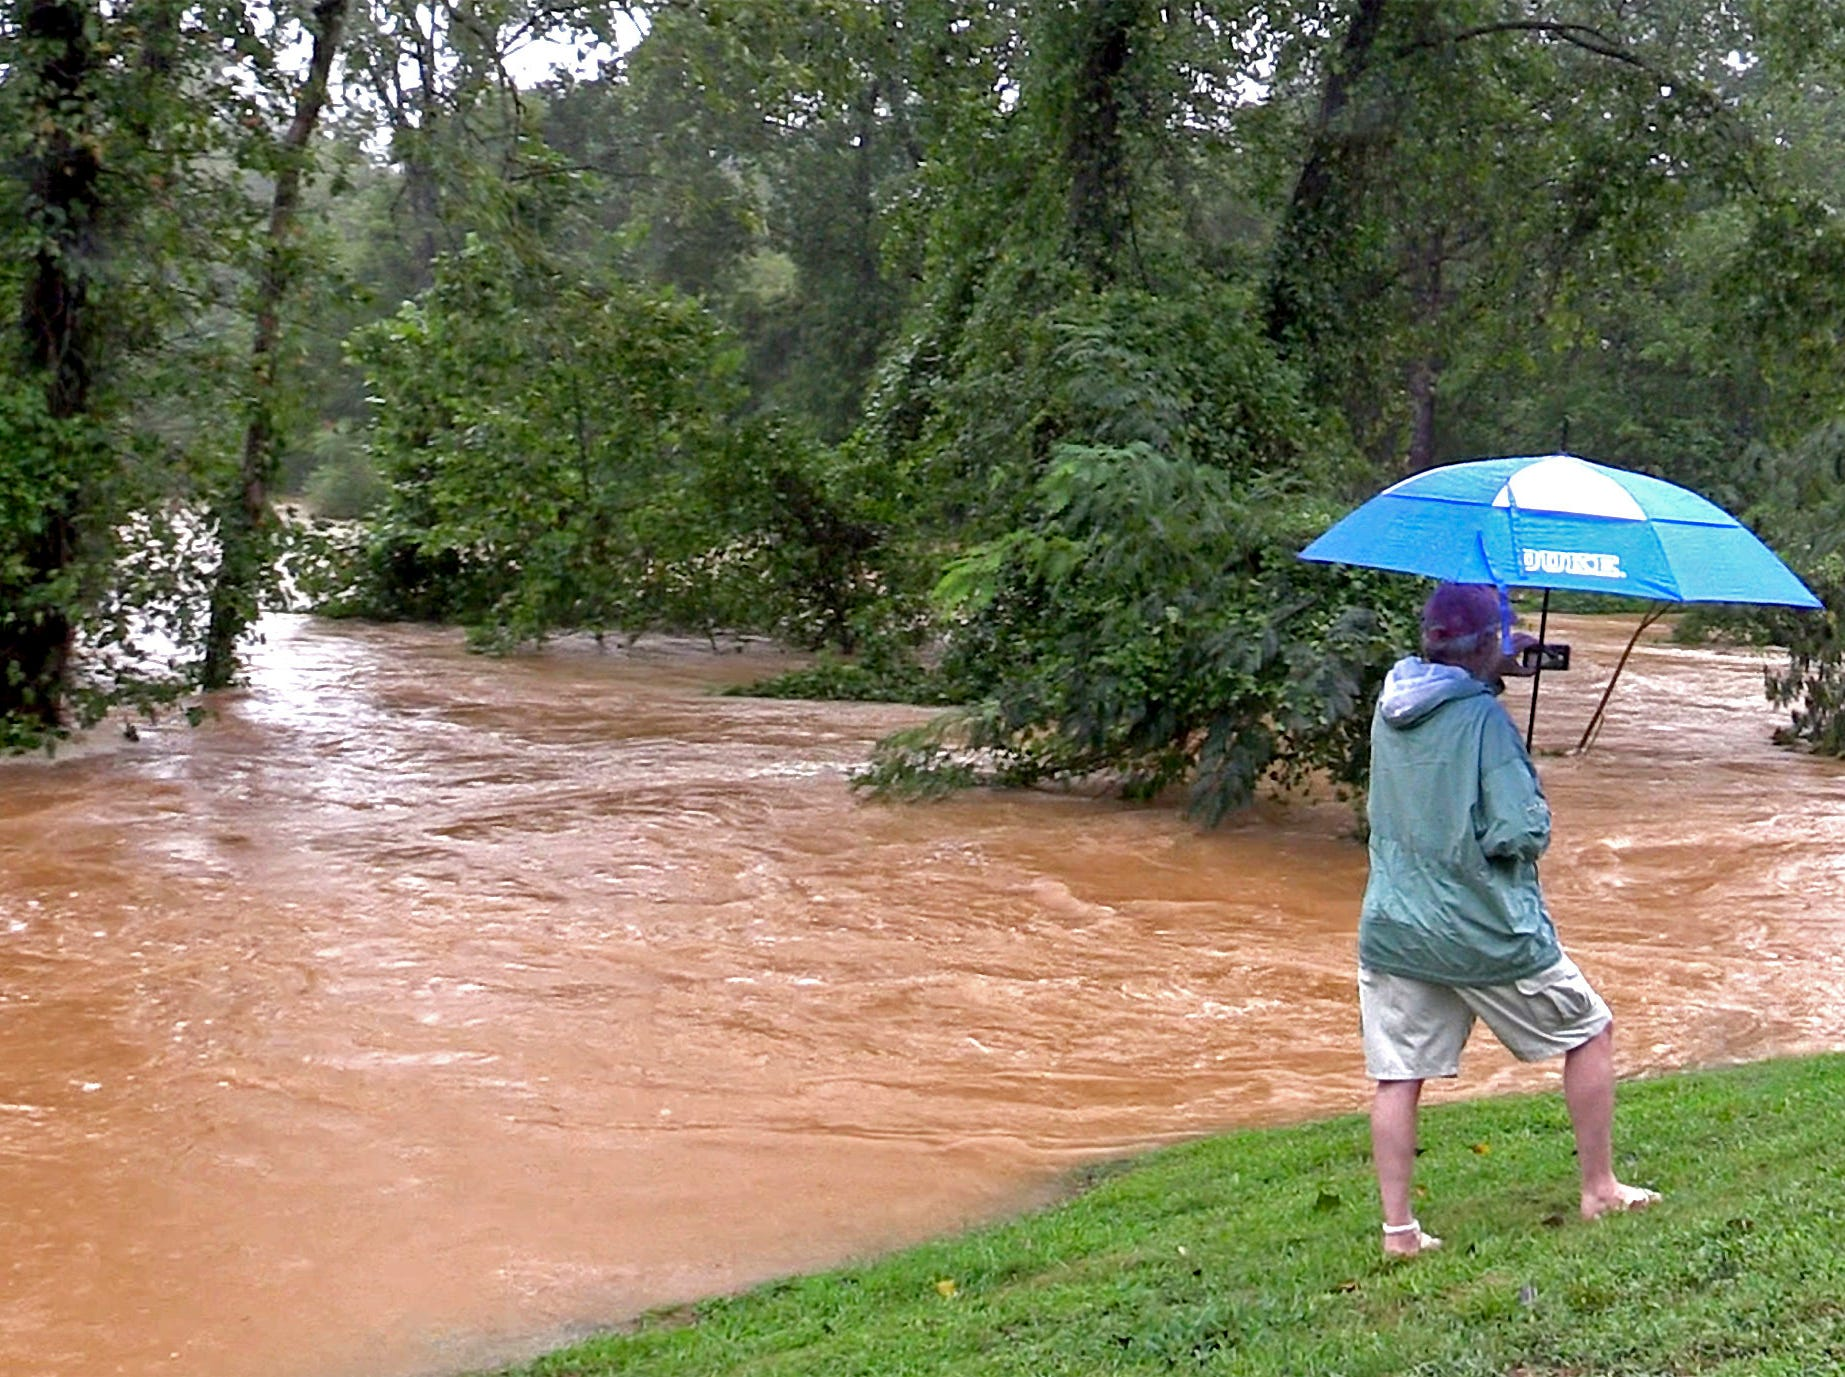 A man photographs the floodwaters of McAlpine Creek along Randolph Road in Charlotte, N.C., on Sunday, Sept. 16, 2018, following Tropical Storm Florence. Florence forced McAlpine Creek from its bed, flooding the popular greenway for walkers and bicyclists.